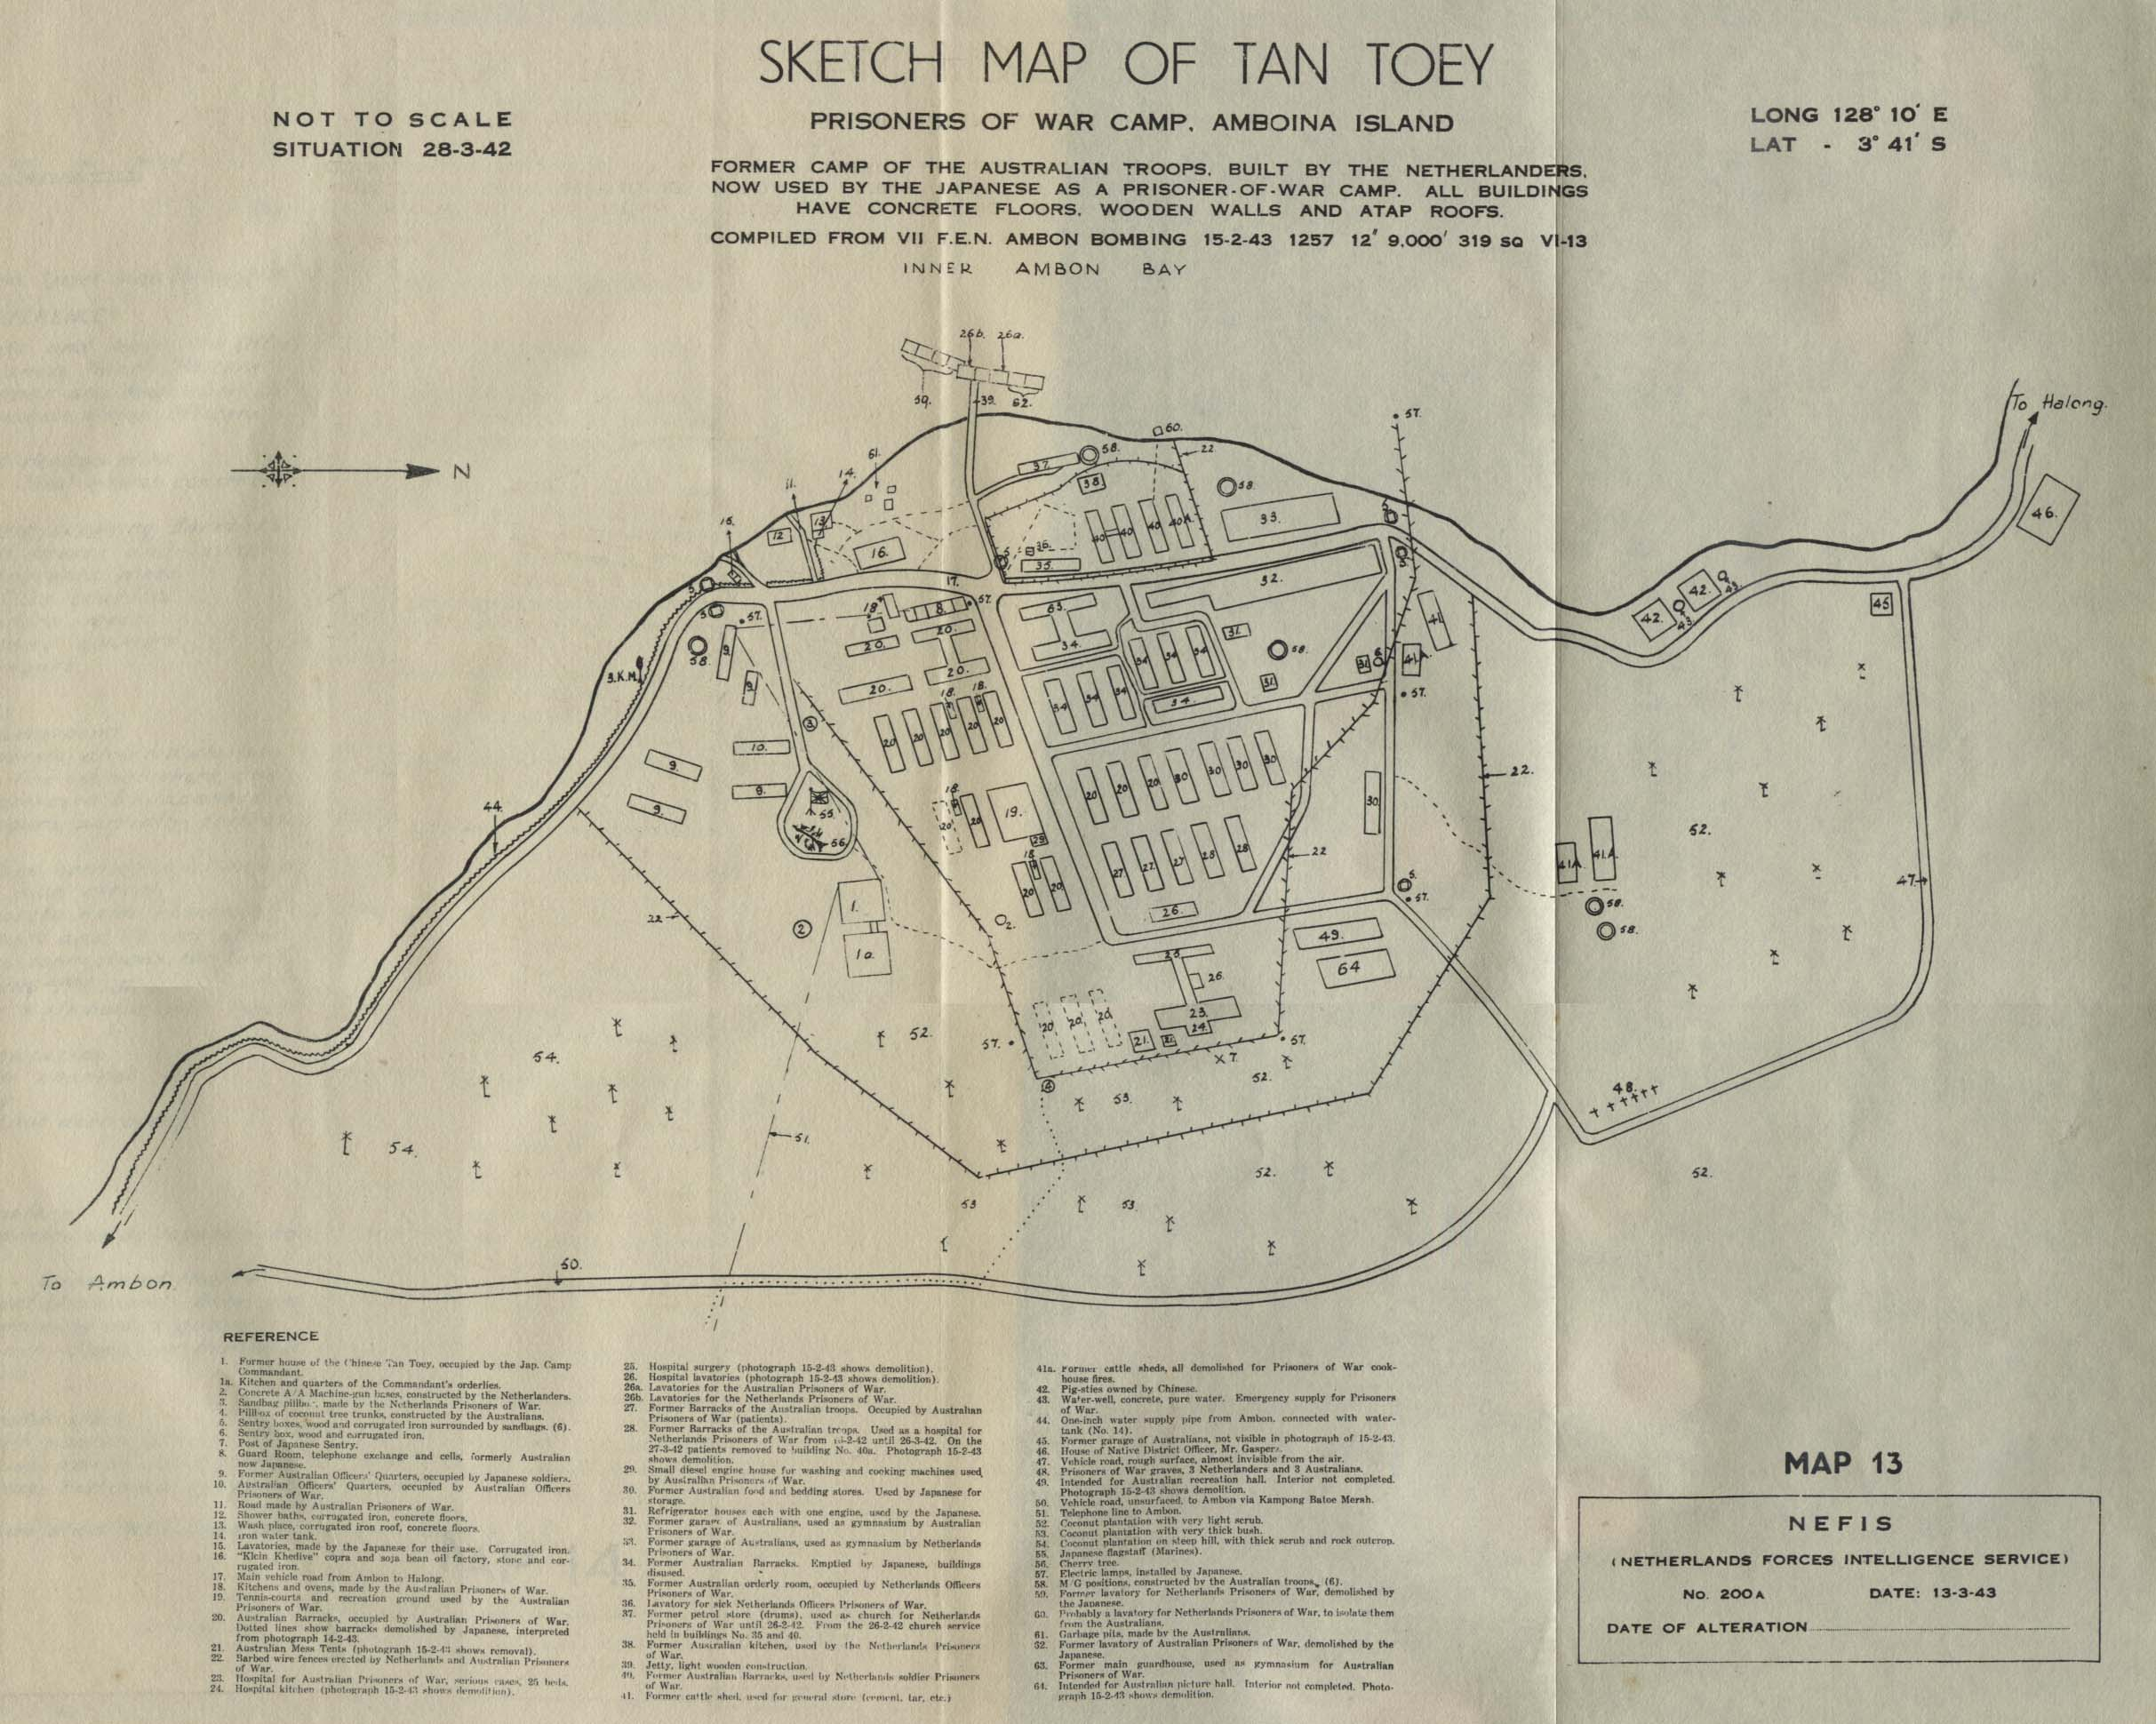 Sketch Map of Tan Toey Prisoners of War Camp, Ambon Island, Indonesia 1943